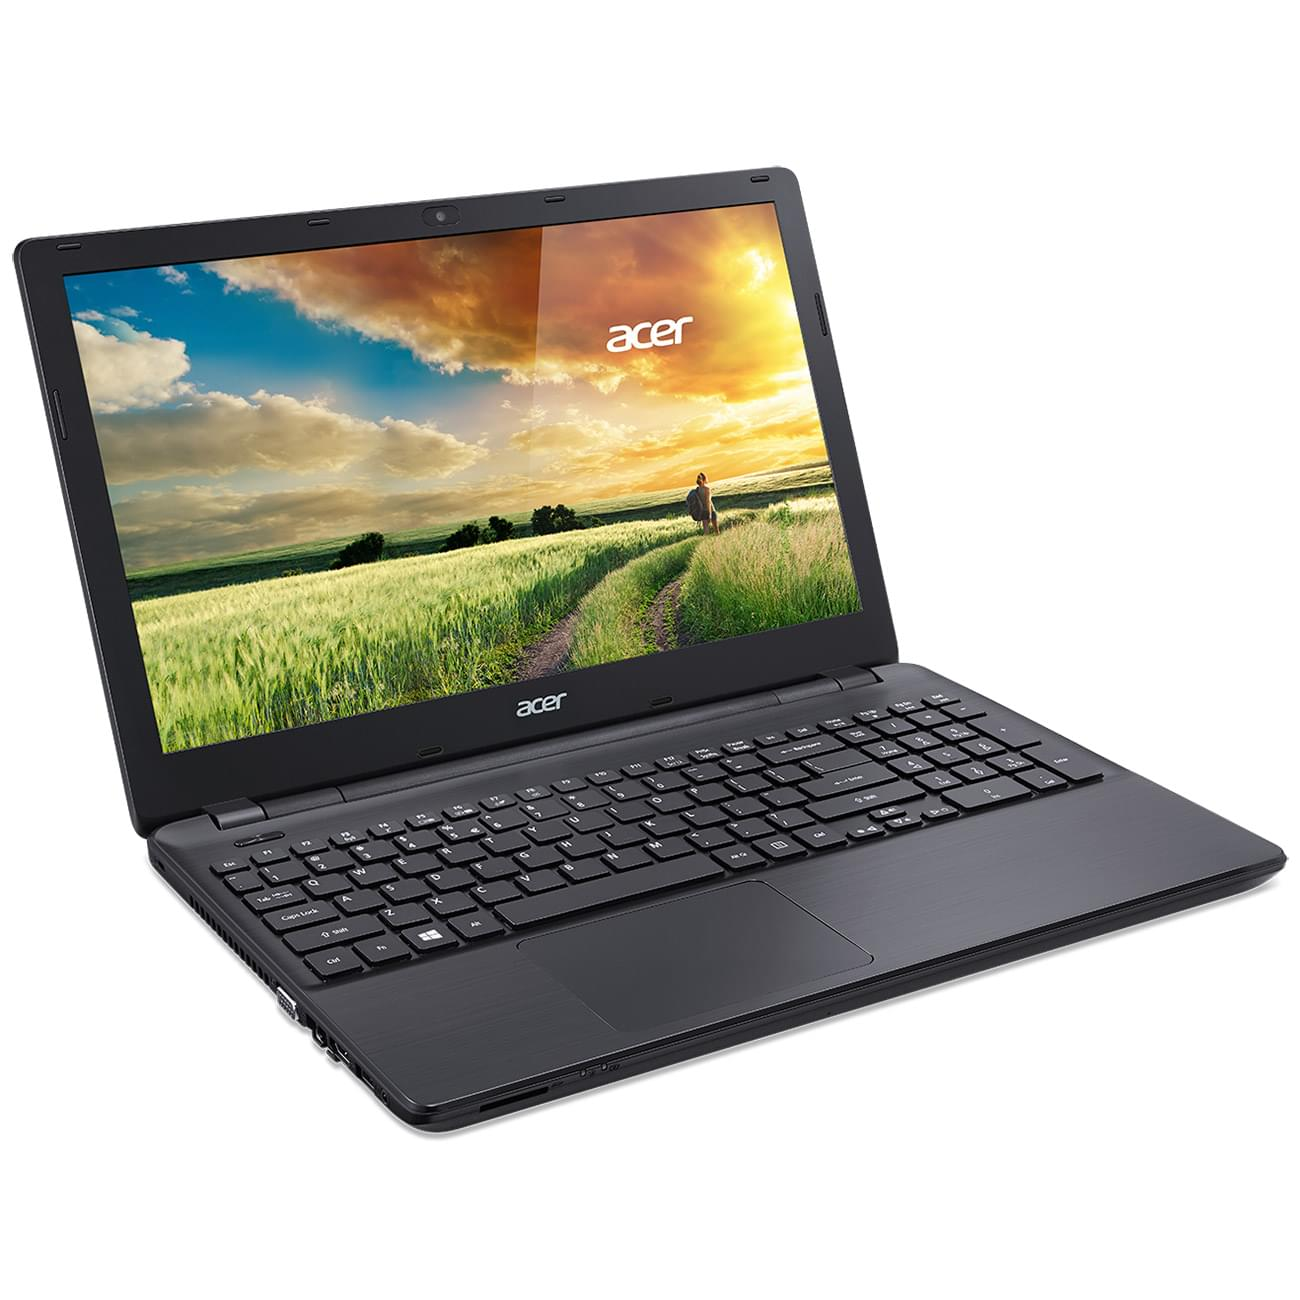 Acer NX.ML8EF.011 fdv - PC portable Acer - Cybertek.fr - 0